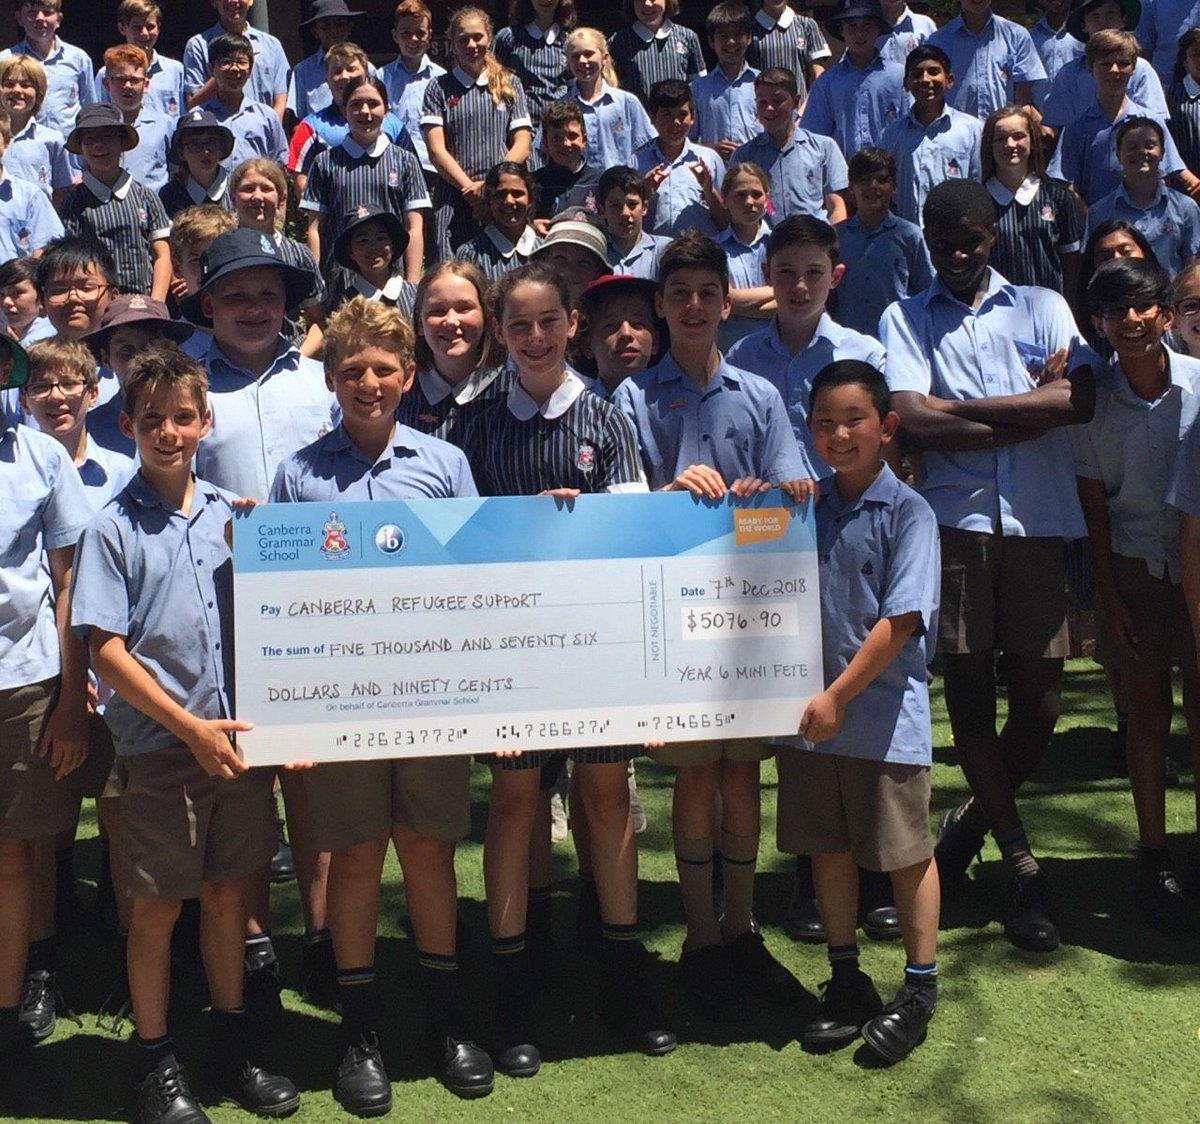 What a great collective initiative - our Year 6 have taken action to support the Canberra Refugee Support organisation by donating their Mini-Fete profits.